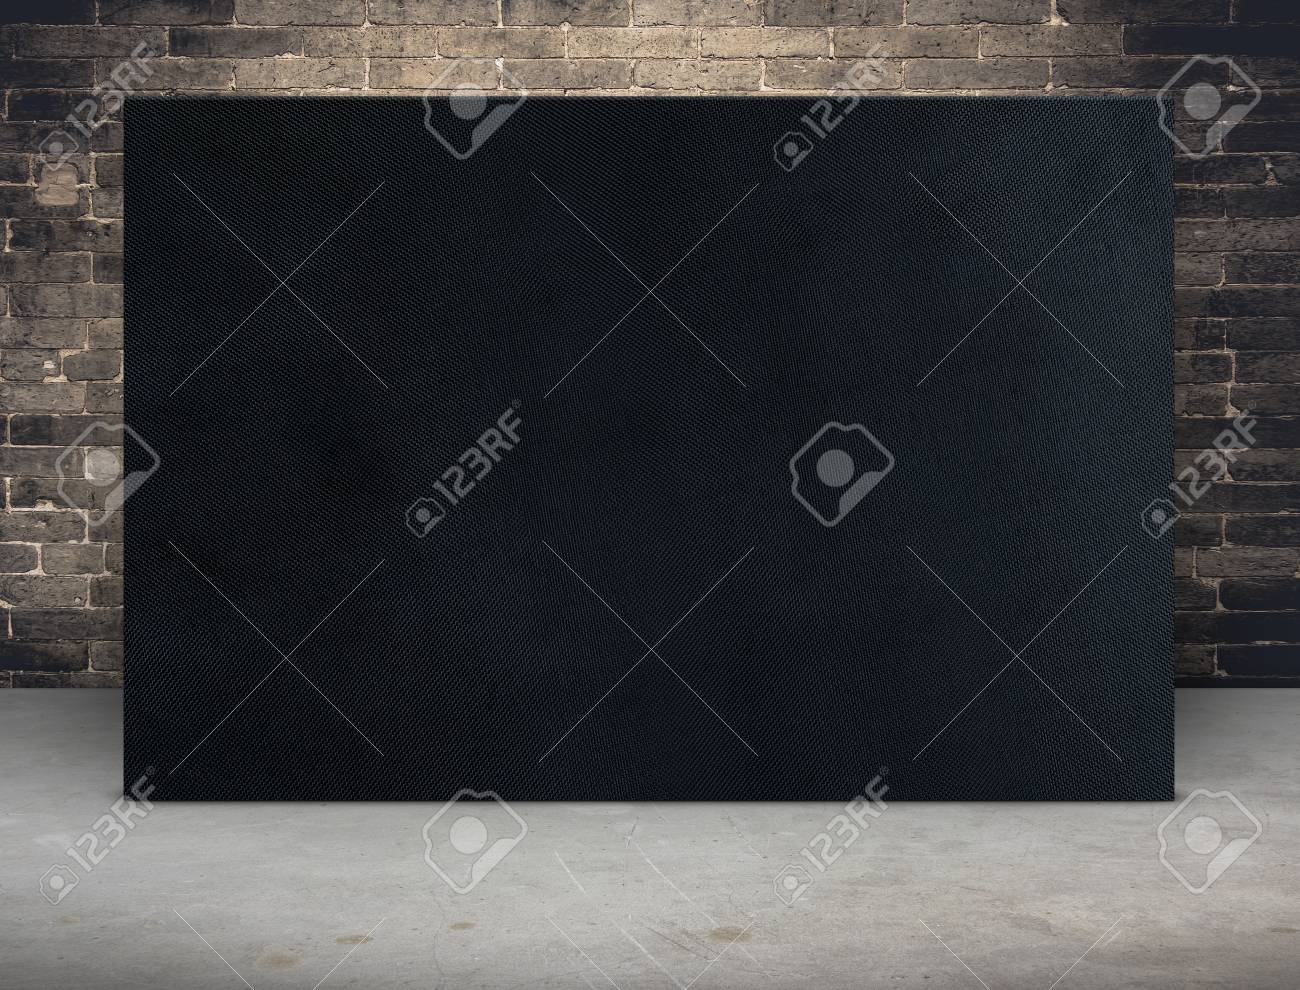 Blank black fabric canvas frame at grunge brick wall and concrete